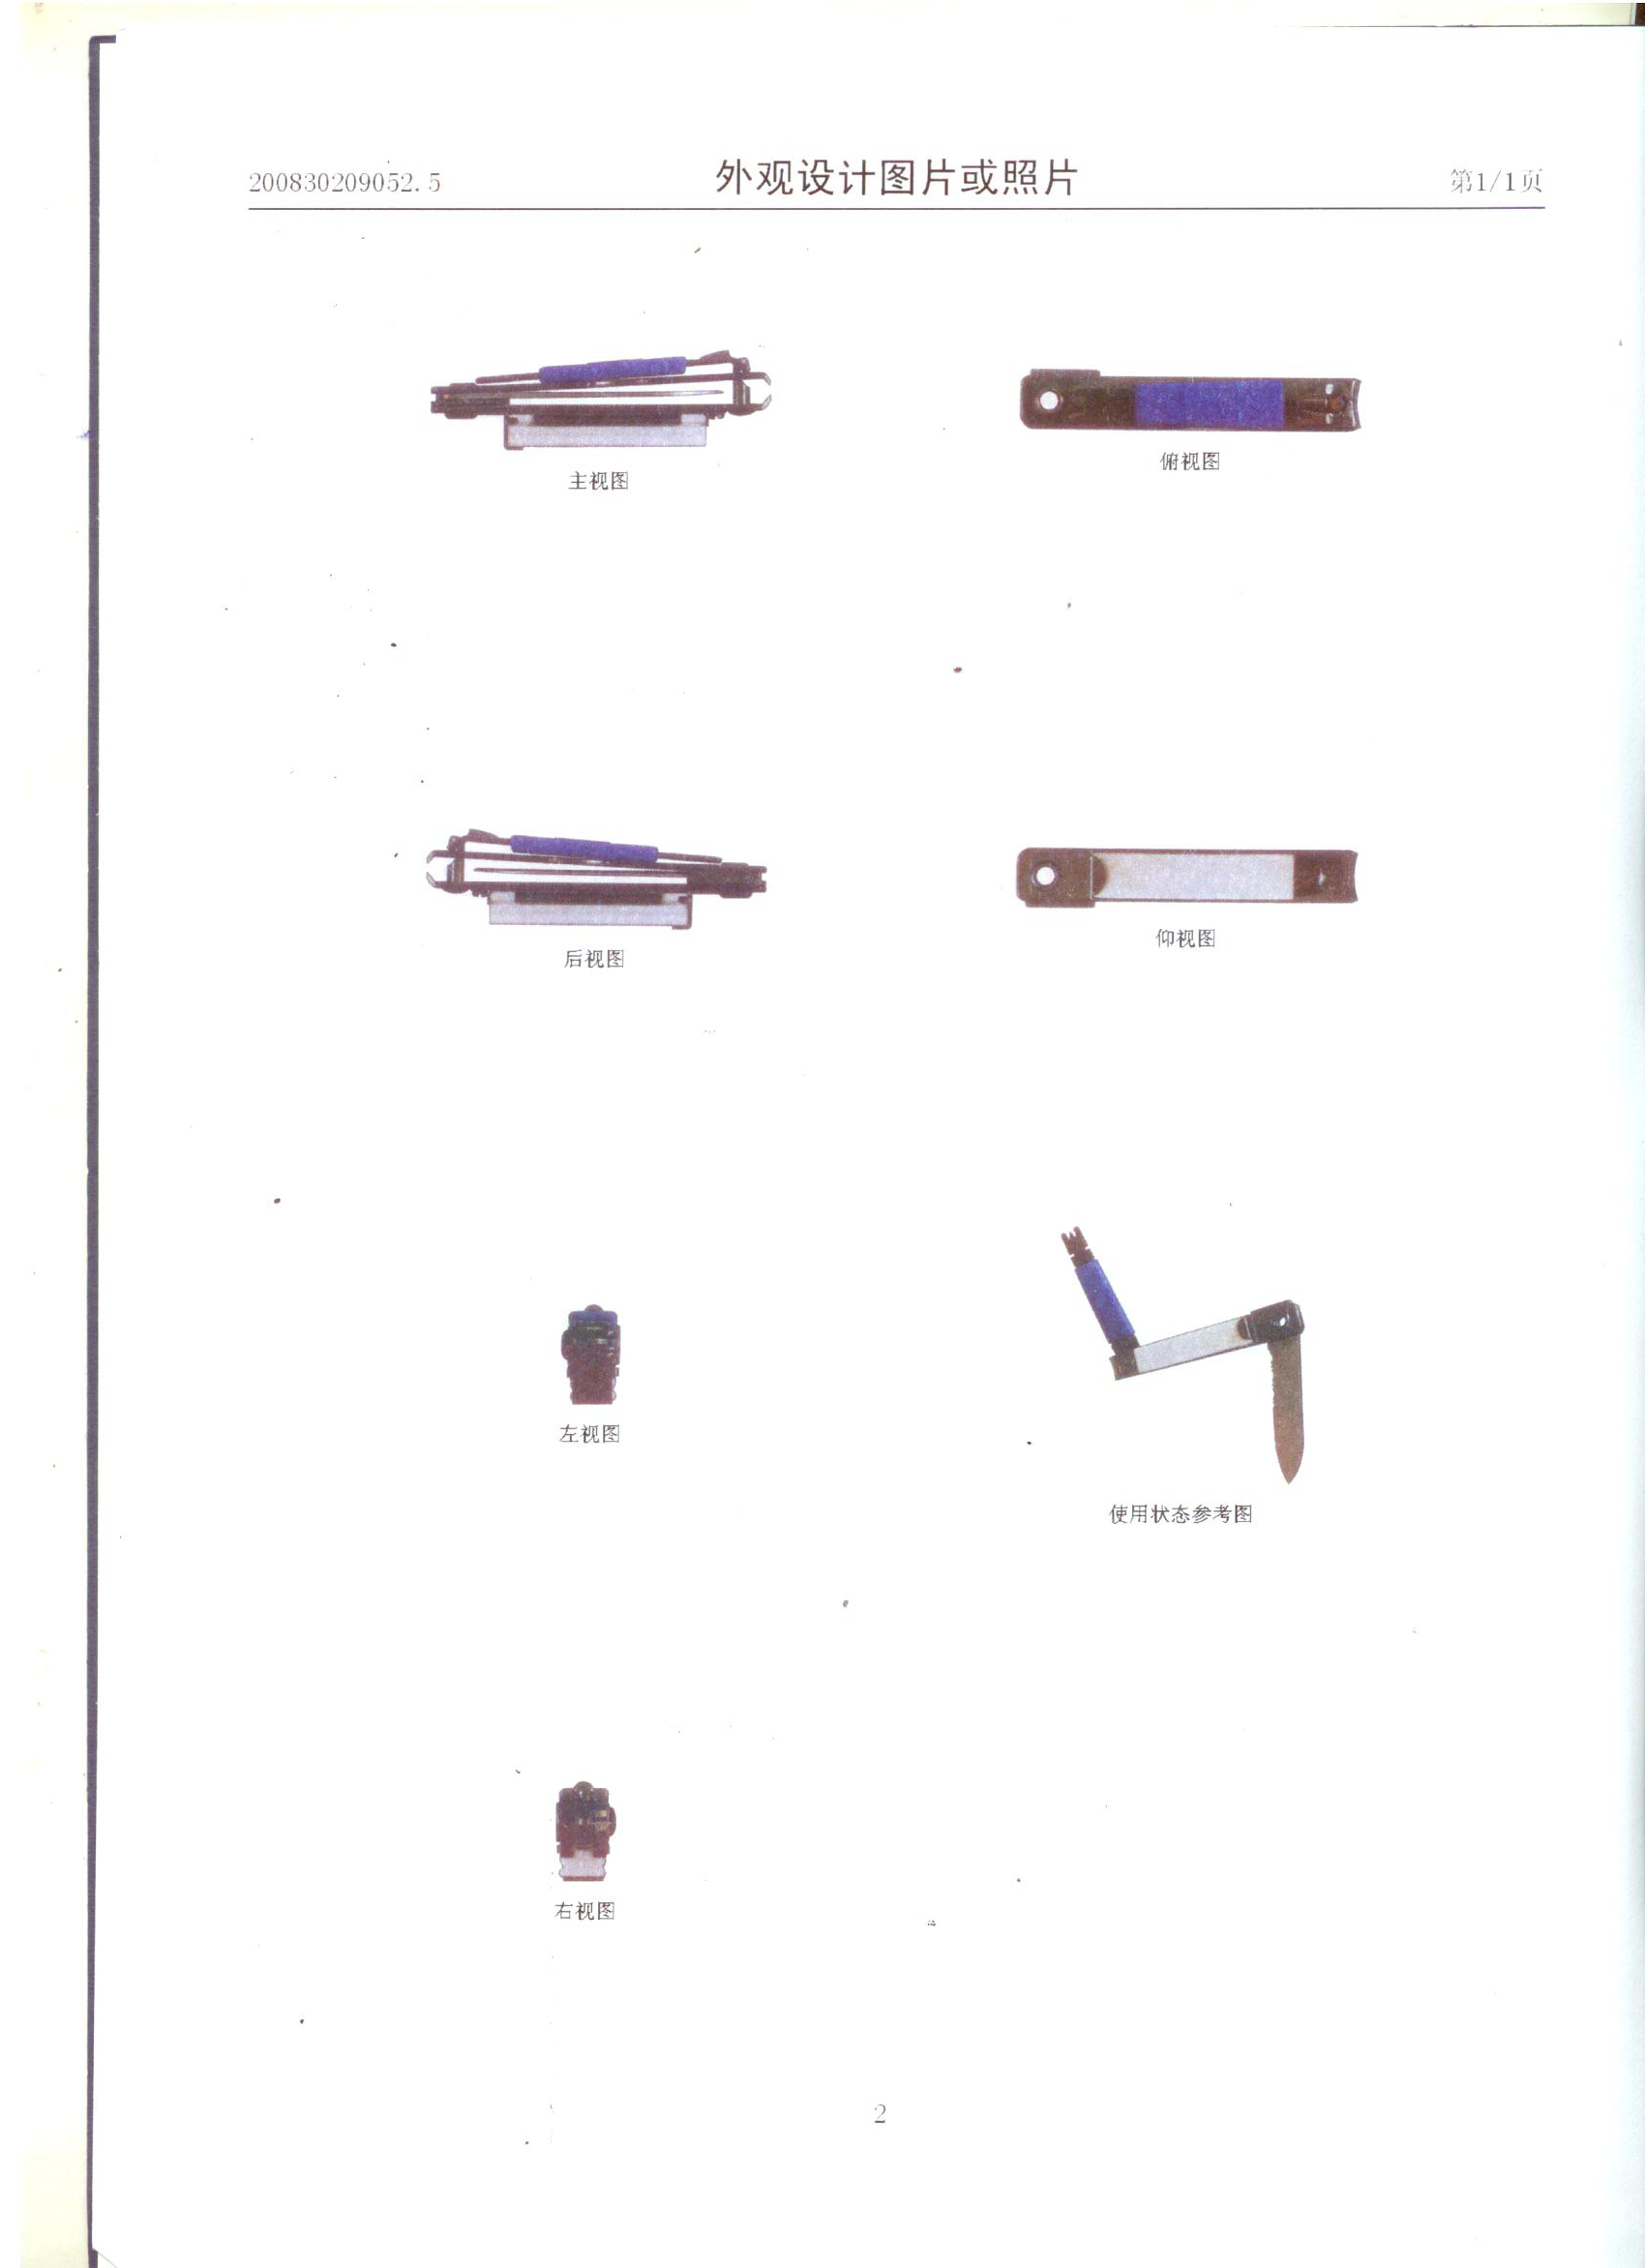 nail clipper products paten